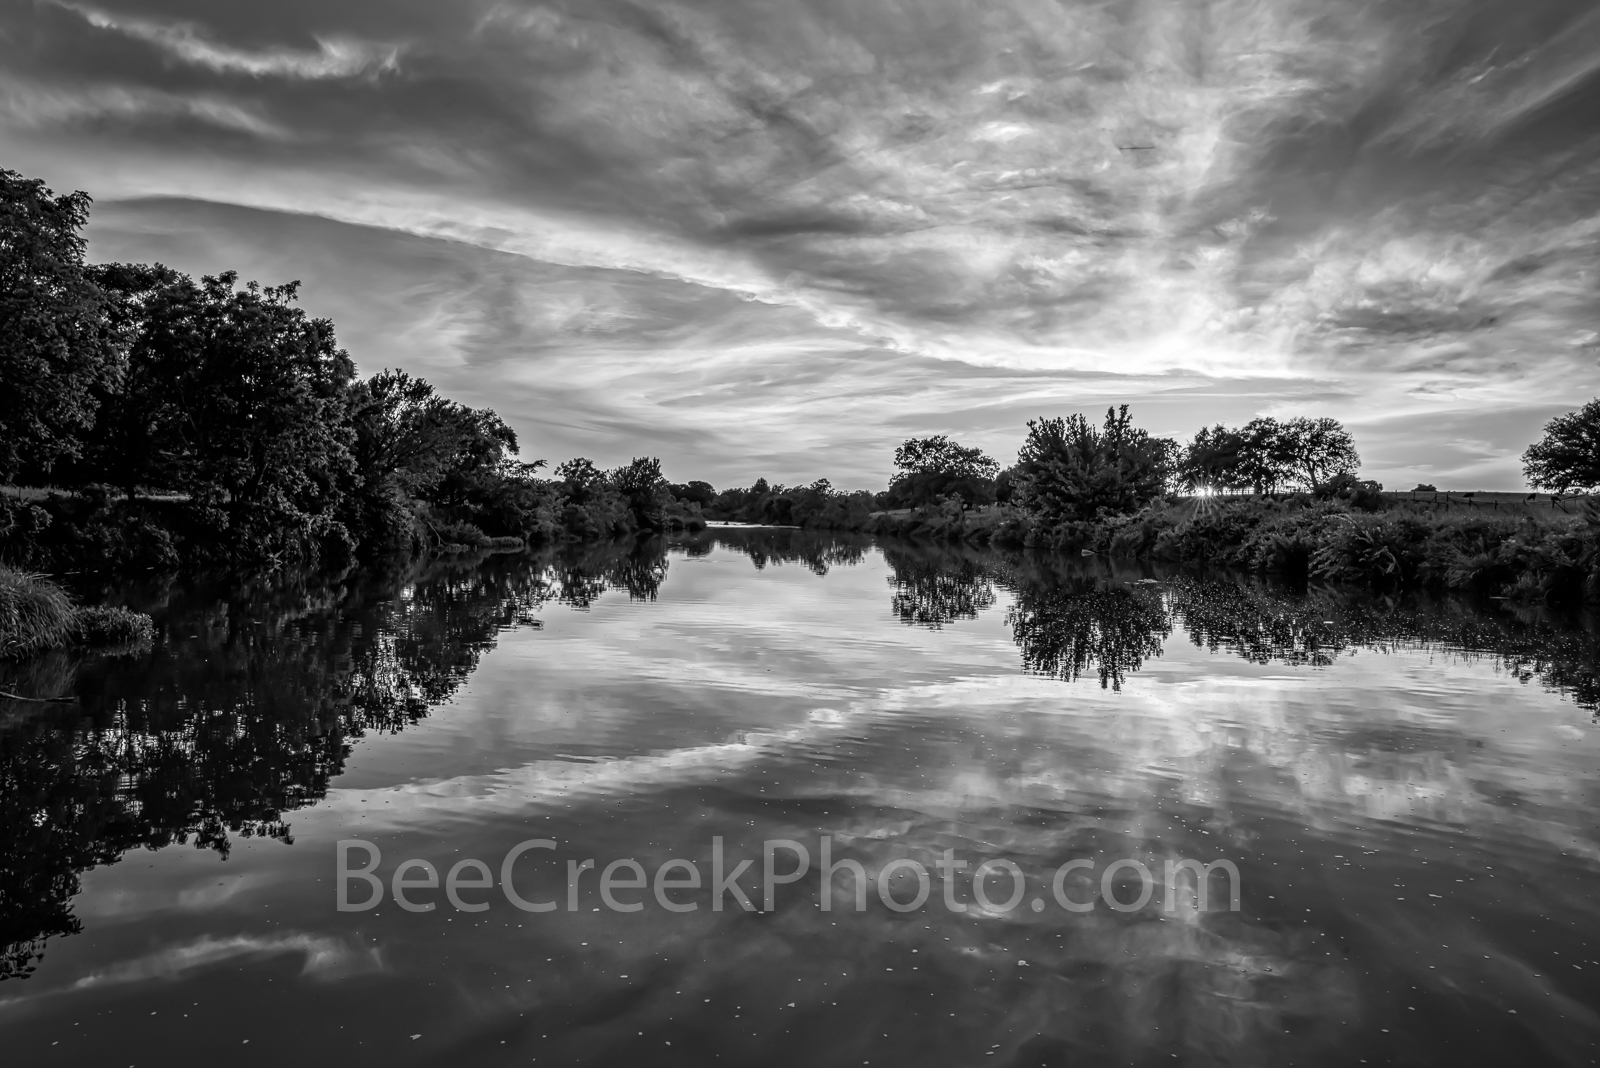 Texas Hill Country BW, pedernales river, black and white, bw, lbj ranch, texas hill country, hill country,, photo